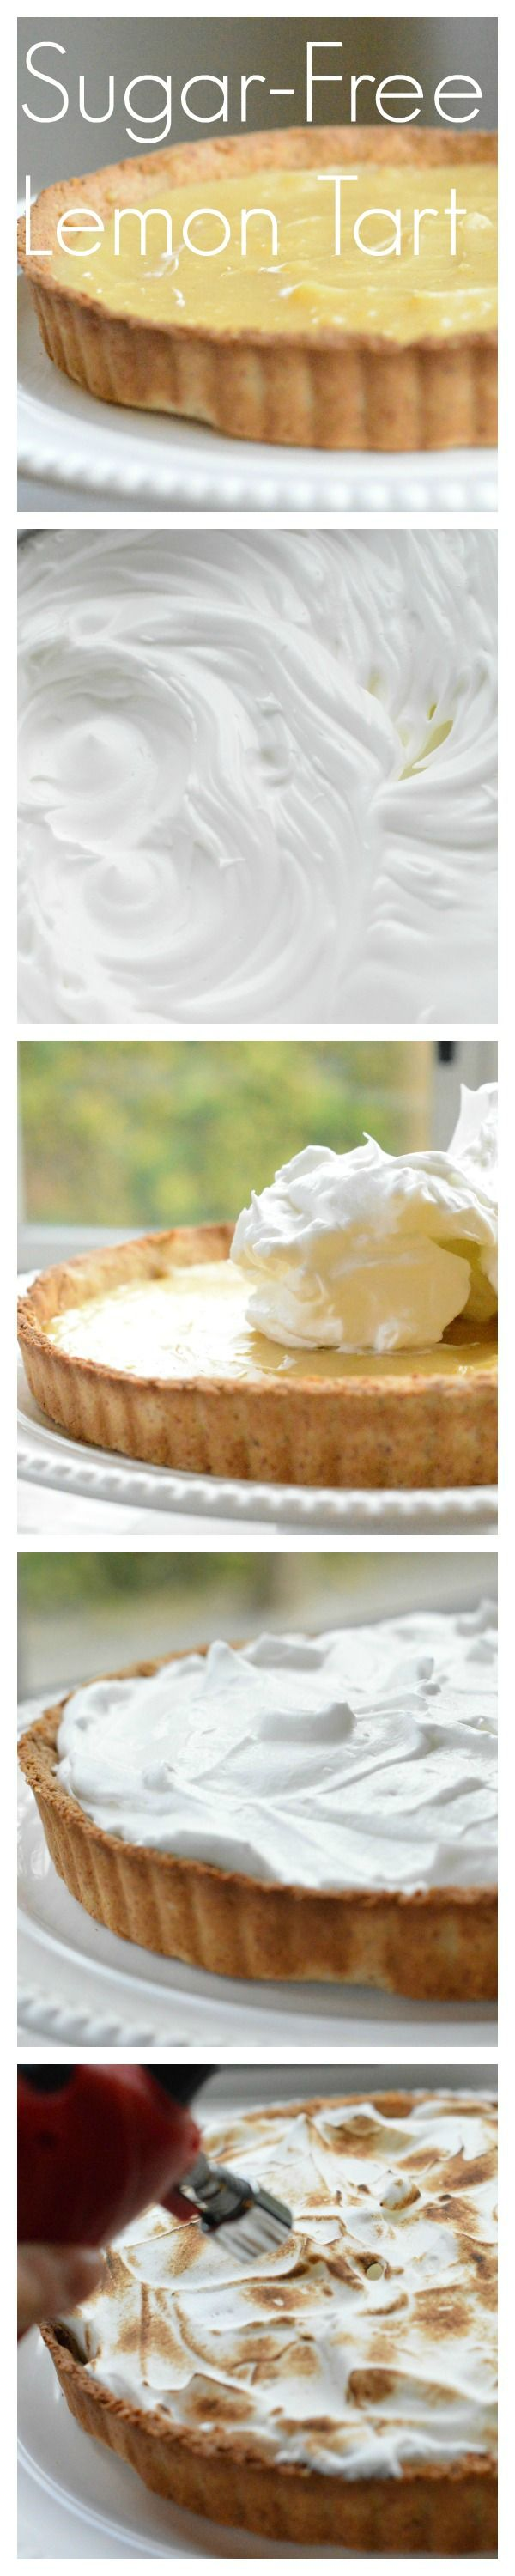 Sugar Free Lemon Tart by www.sweetashoney.co #lowcarbcrust #glutenfreepie #lemonpiecrust #sugarfreepie